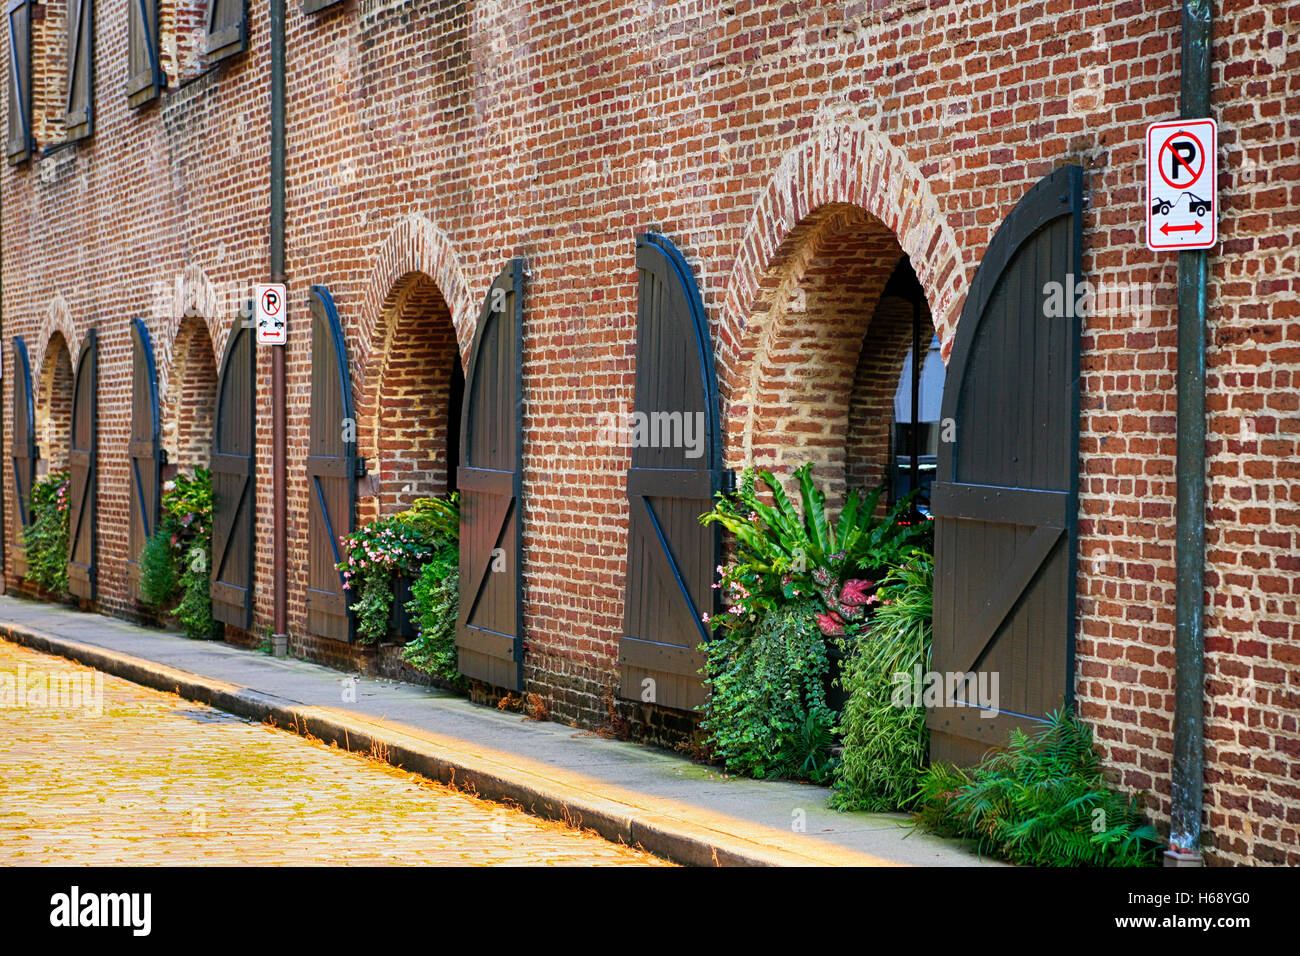 New apartments in the Old Warehouse building on Middle Atlantic Wharf in Charleston, SC - Stock Image